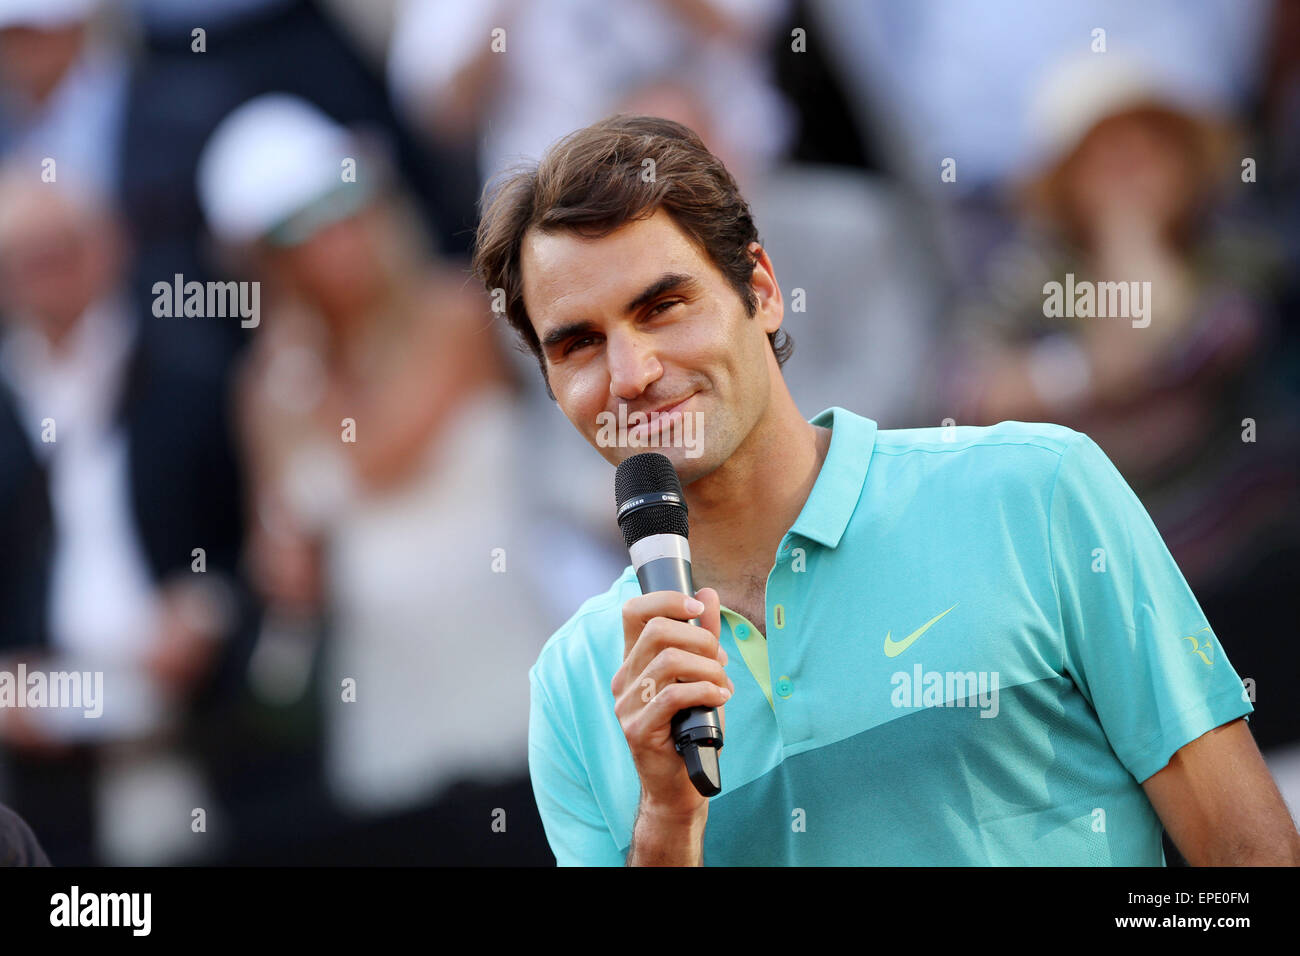 Rome, Italy. 17th May, 2015. Swiss Roger Federer during the singles final match against Novak Djokovic of Serbia - Stock Image